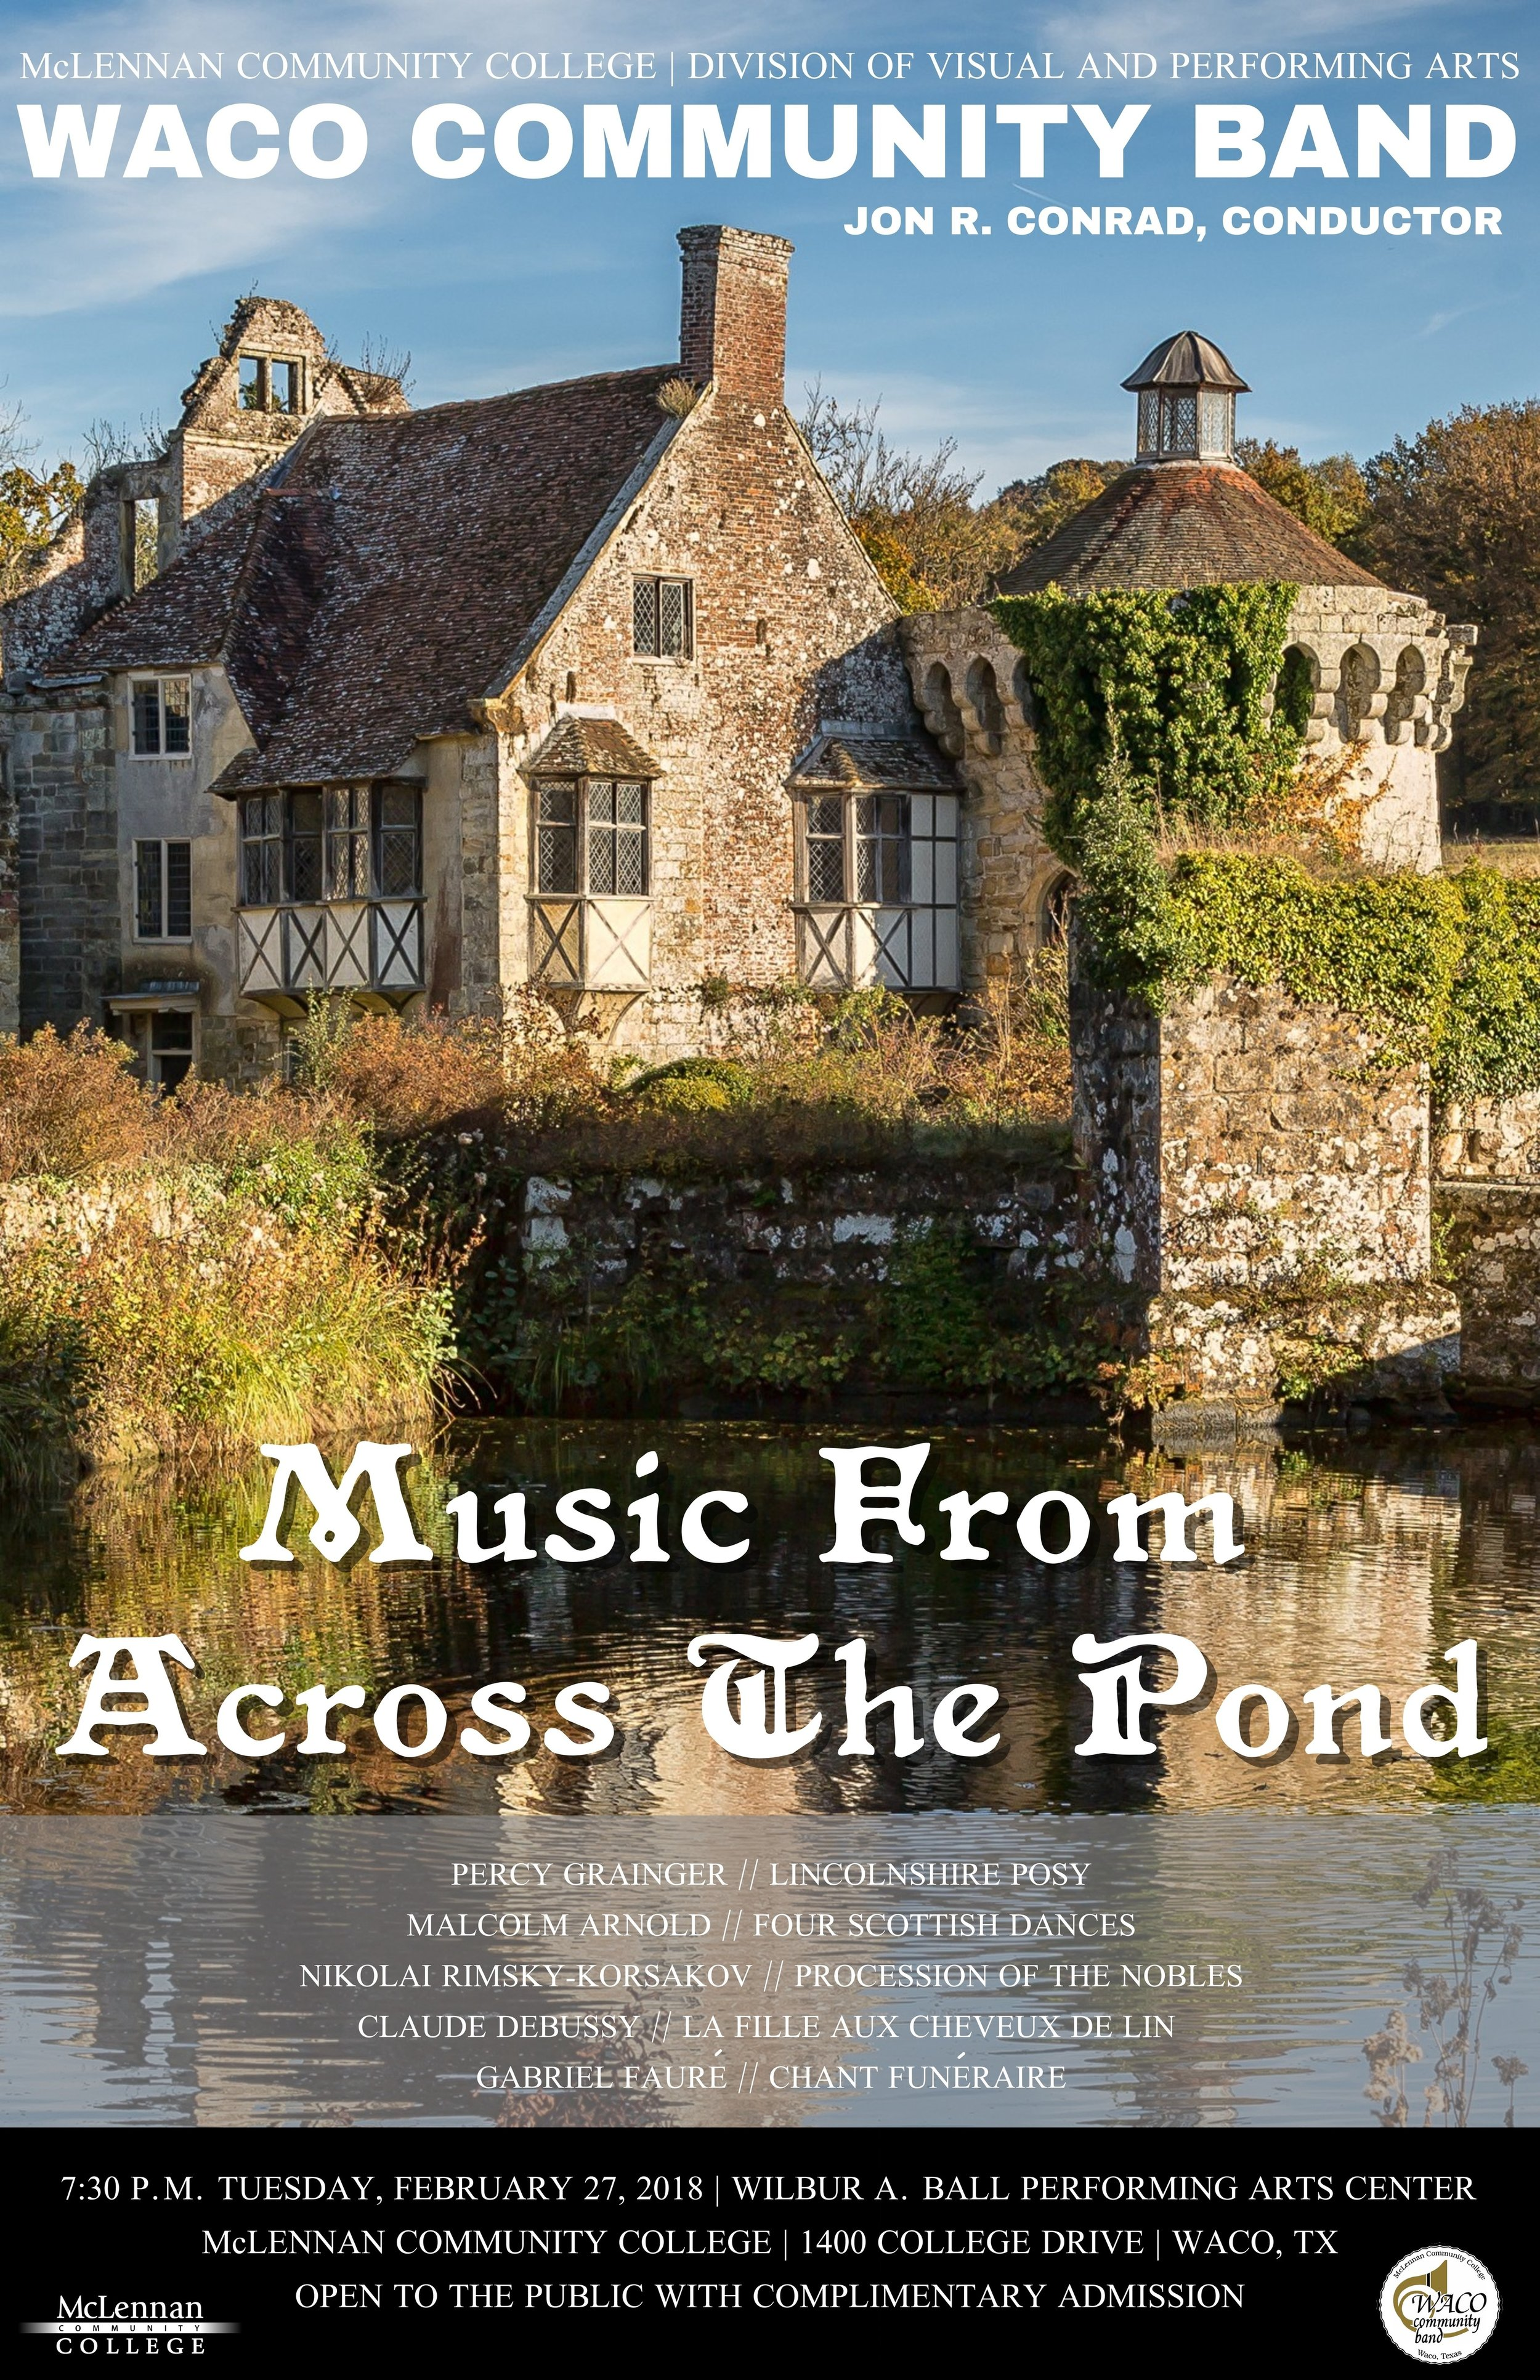 WCB_Feb_27_2018_Music_Aross_Pond.jpg